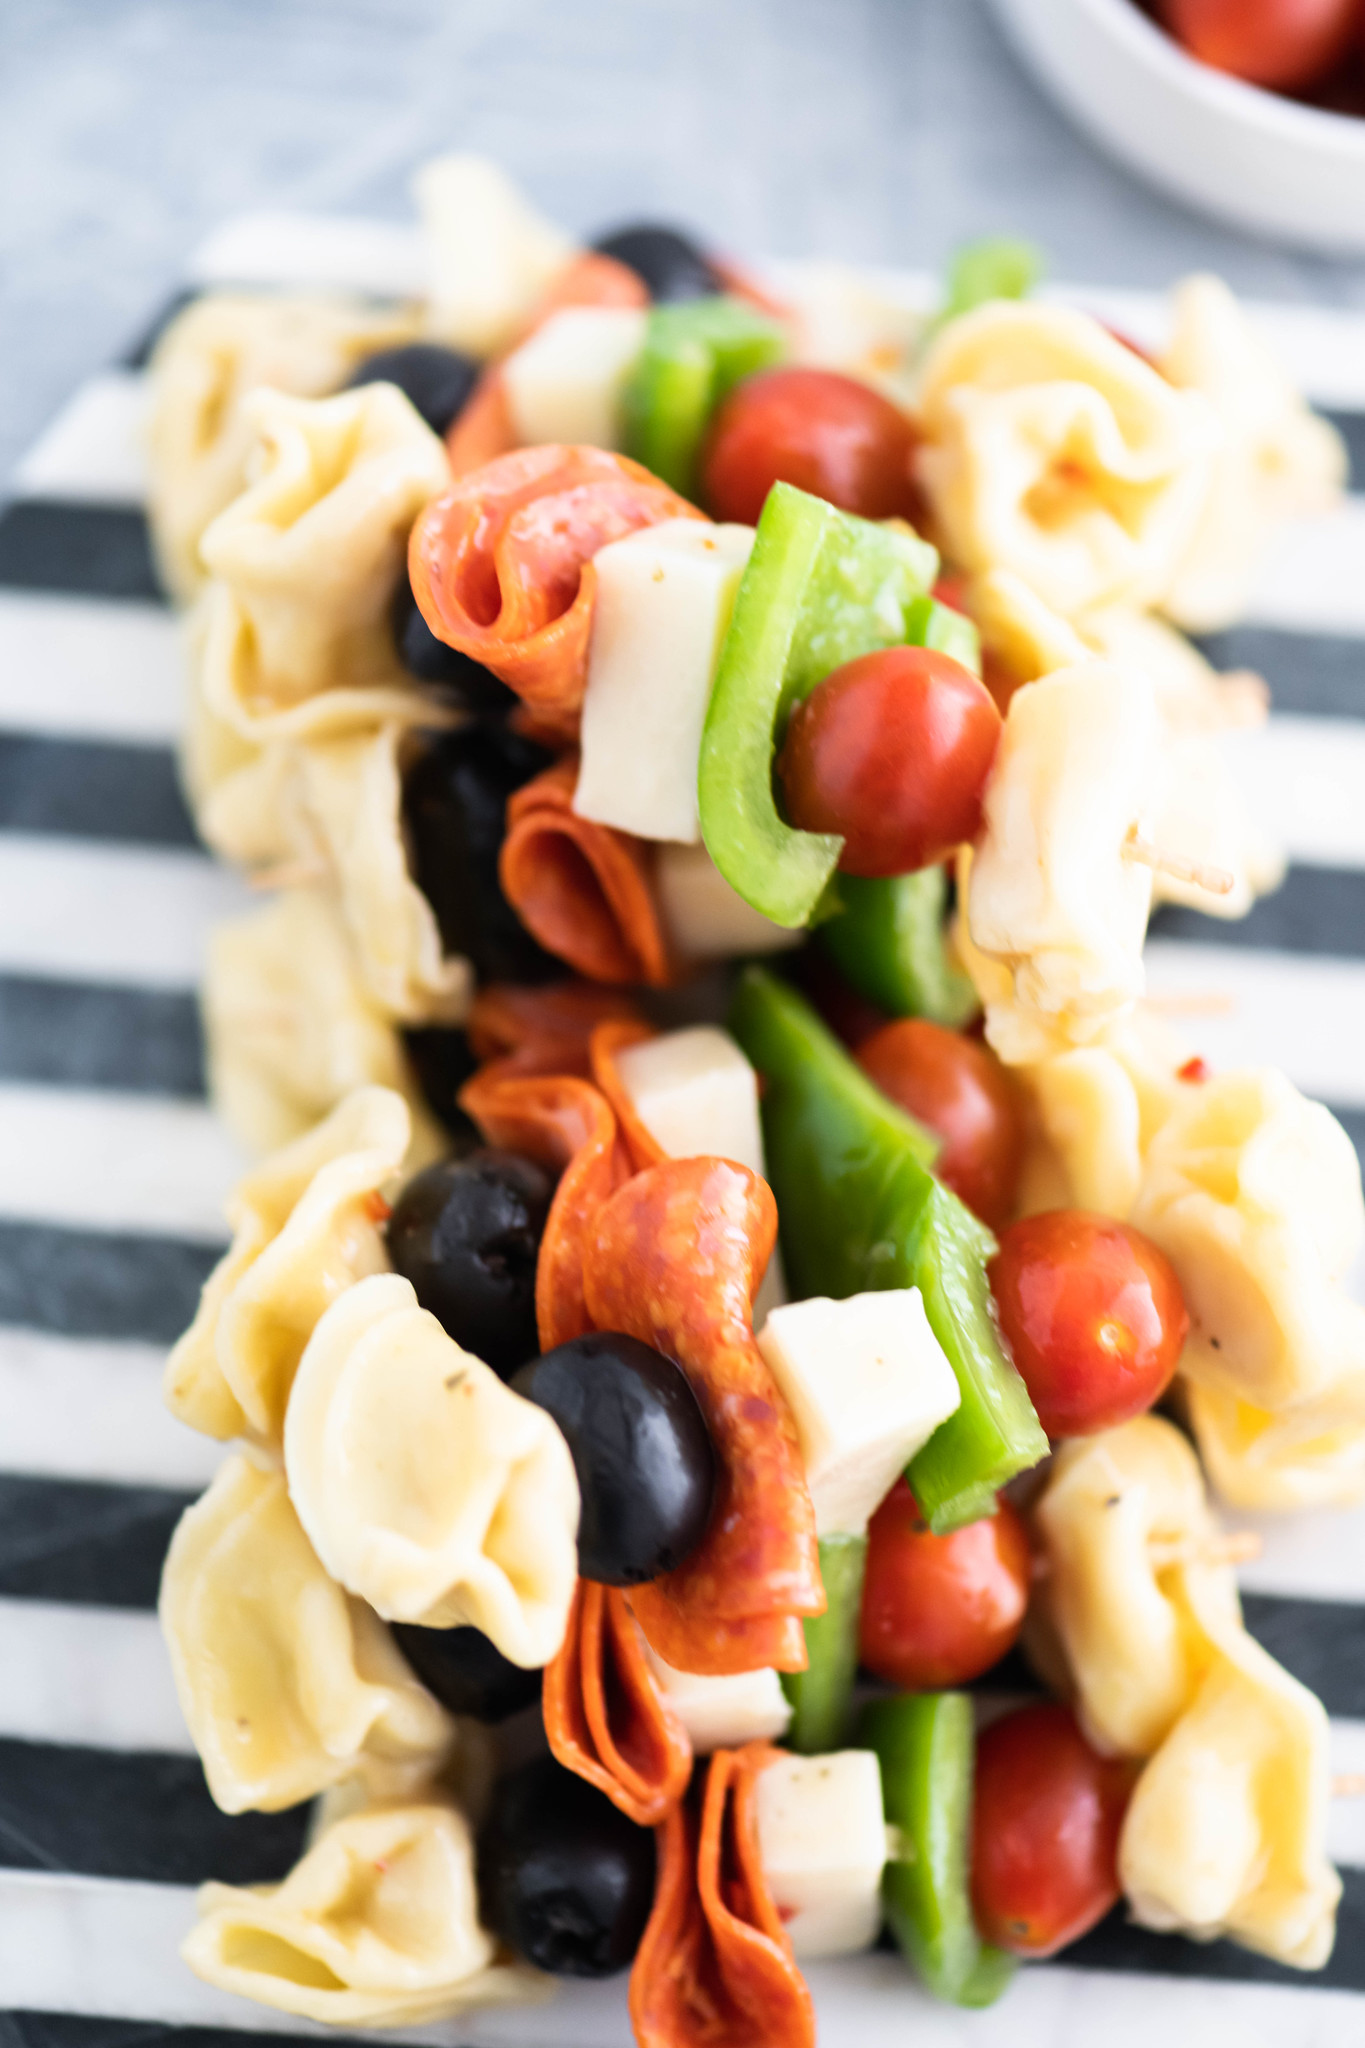 Looking for a fun appetizer or creative lunch box addition? Pasta Salad on a Stick takes all the classic pasta salad ingredients and threads them on a long toothpick for a delicious new spin. Perfect for parties and afternoon snacks alike.